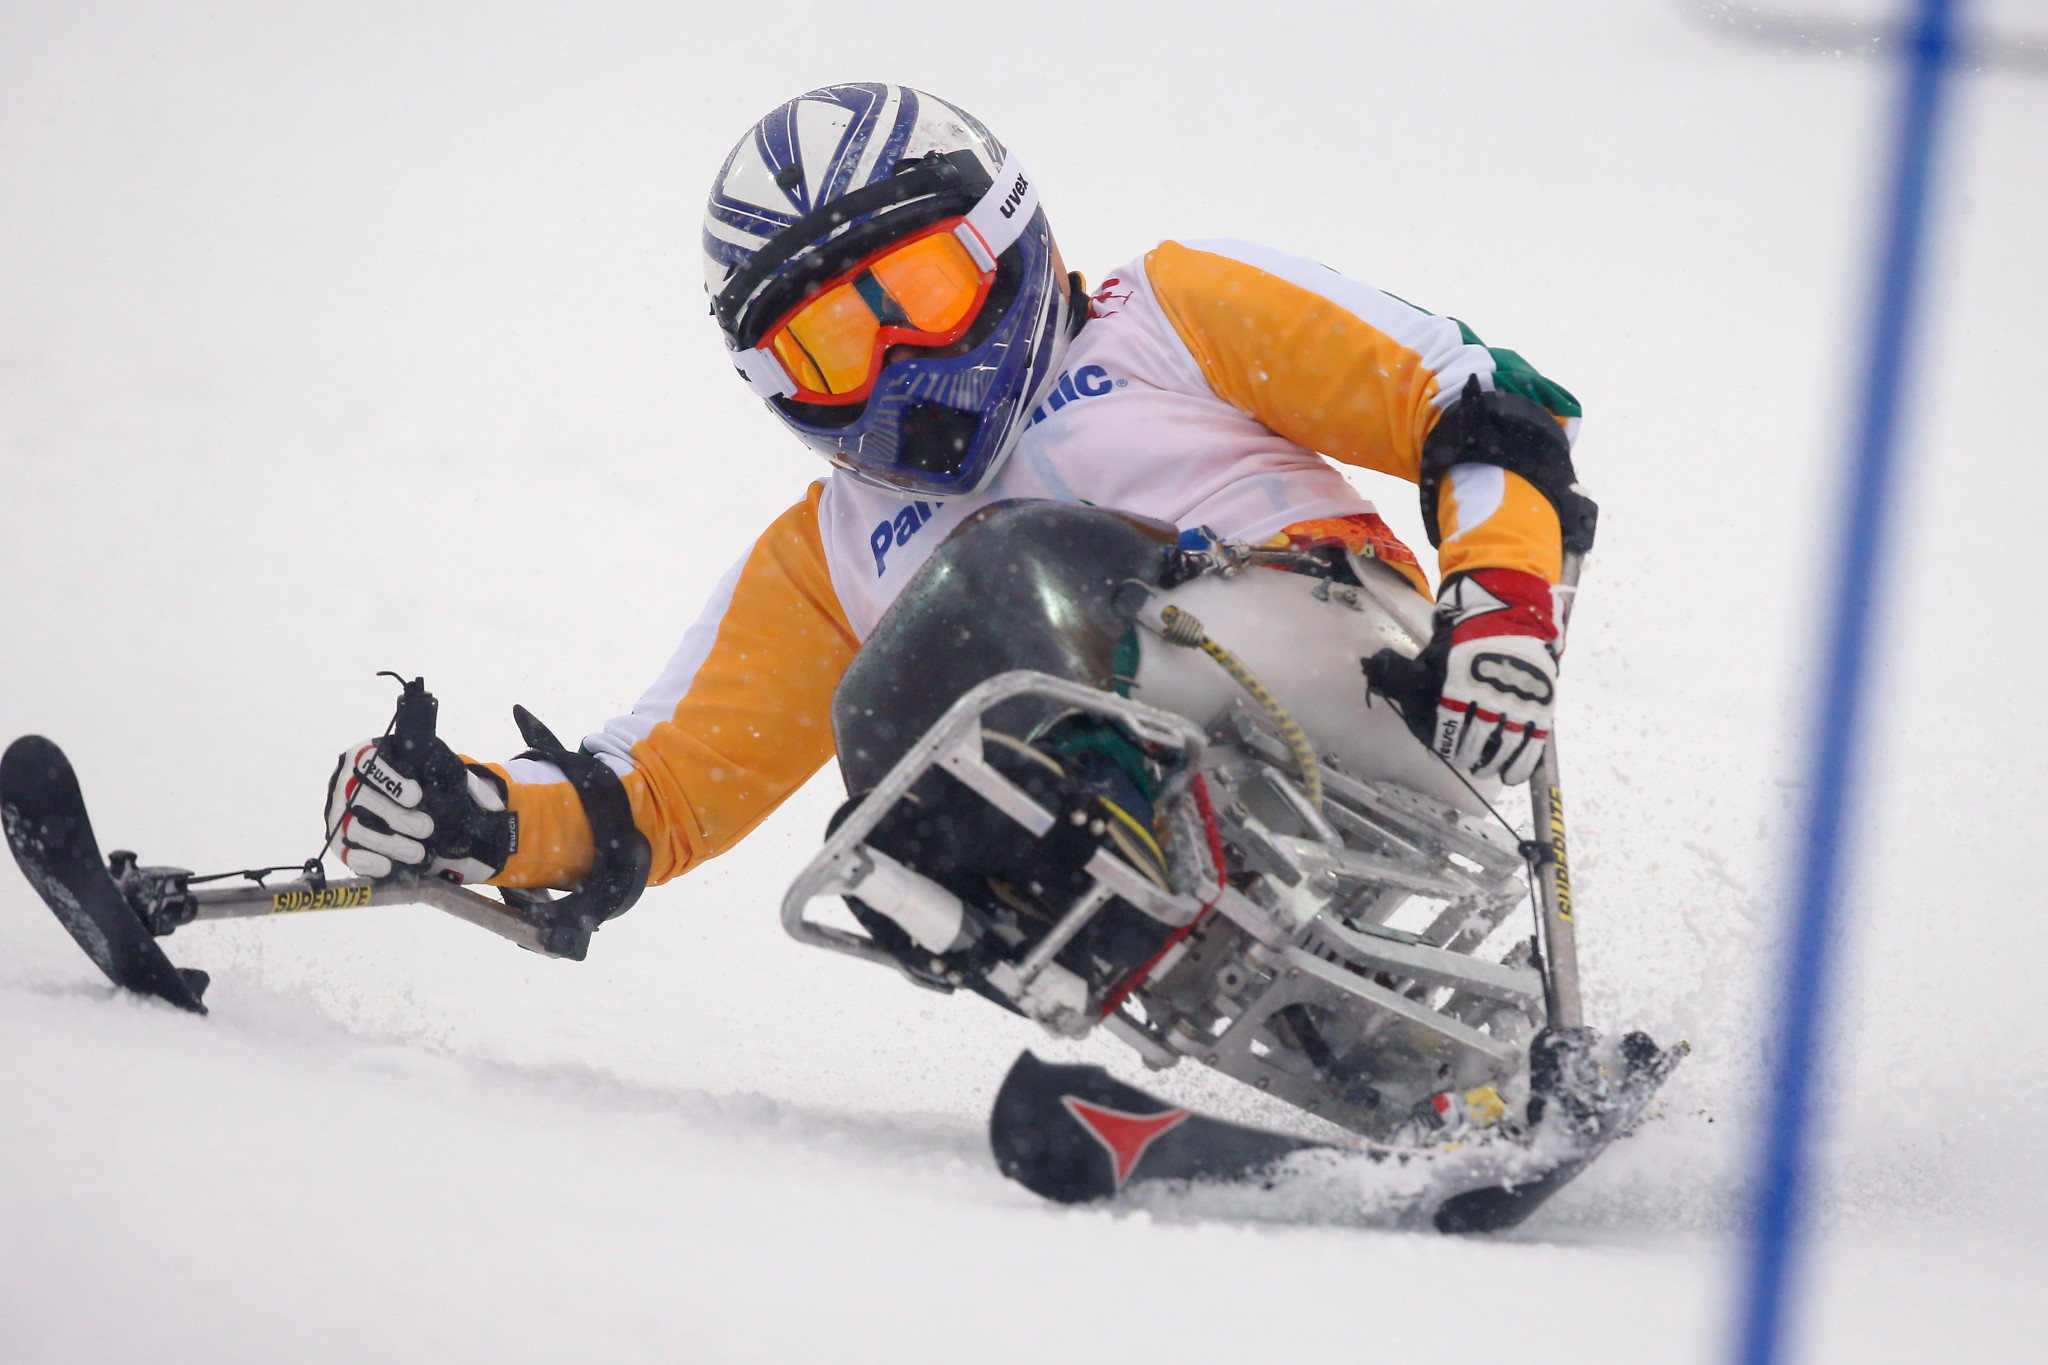 Dual Para-athlete Pendergast announces retirement from skiing